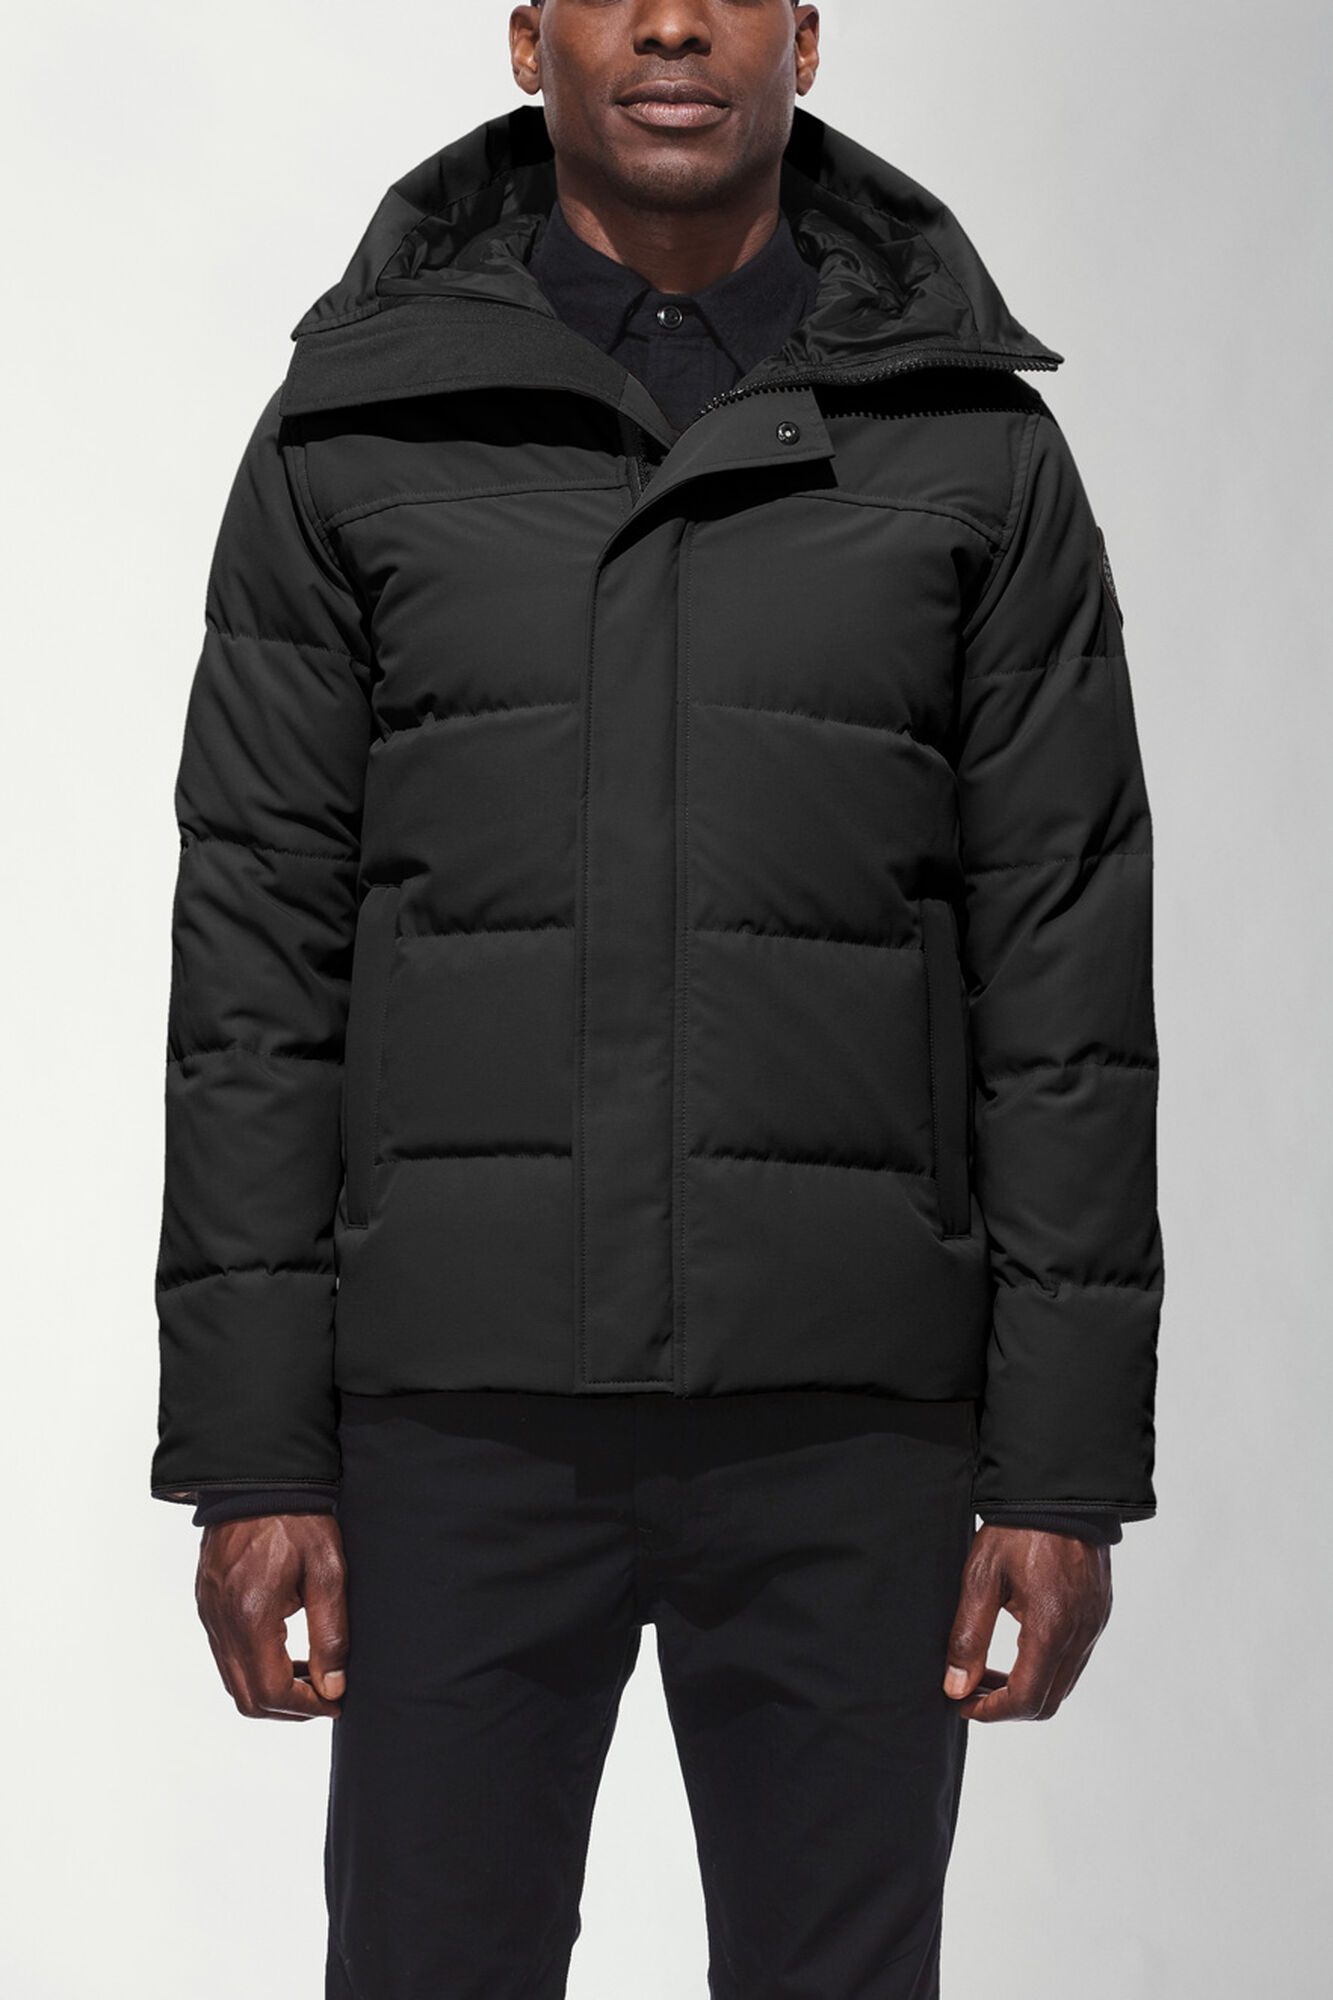 Canada Goose coats replica price - Mens Extreme Weather Outerwear | Canada Goose?